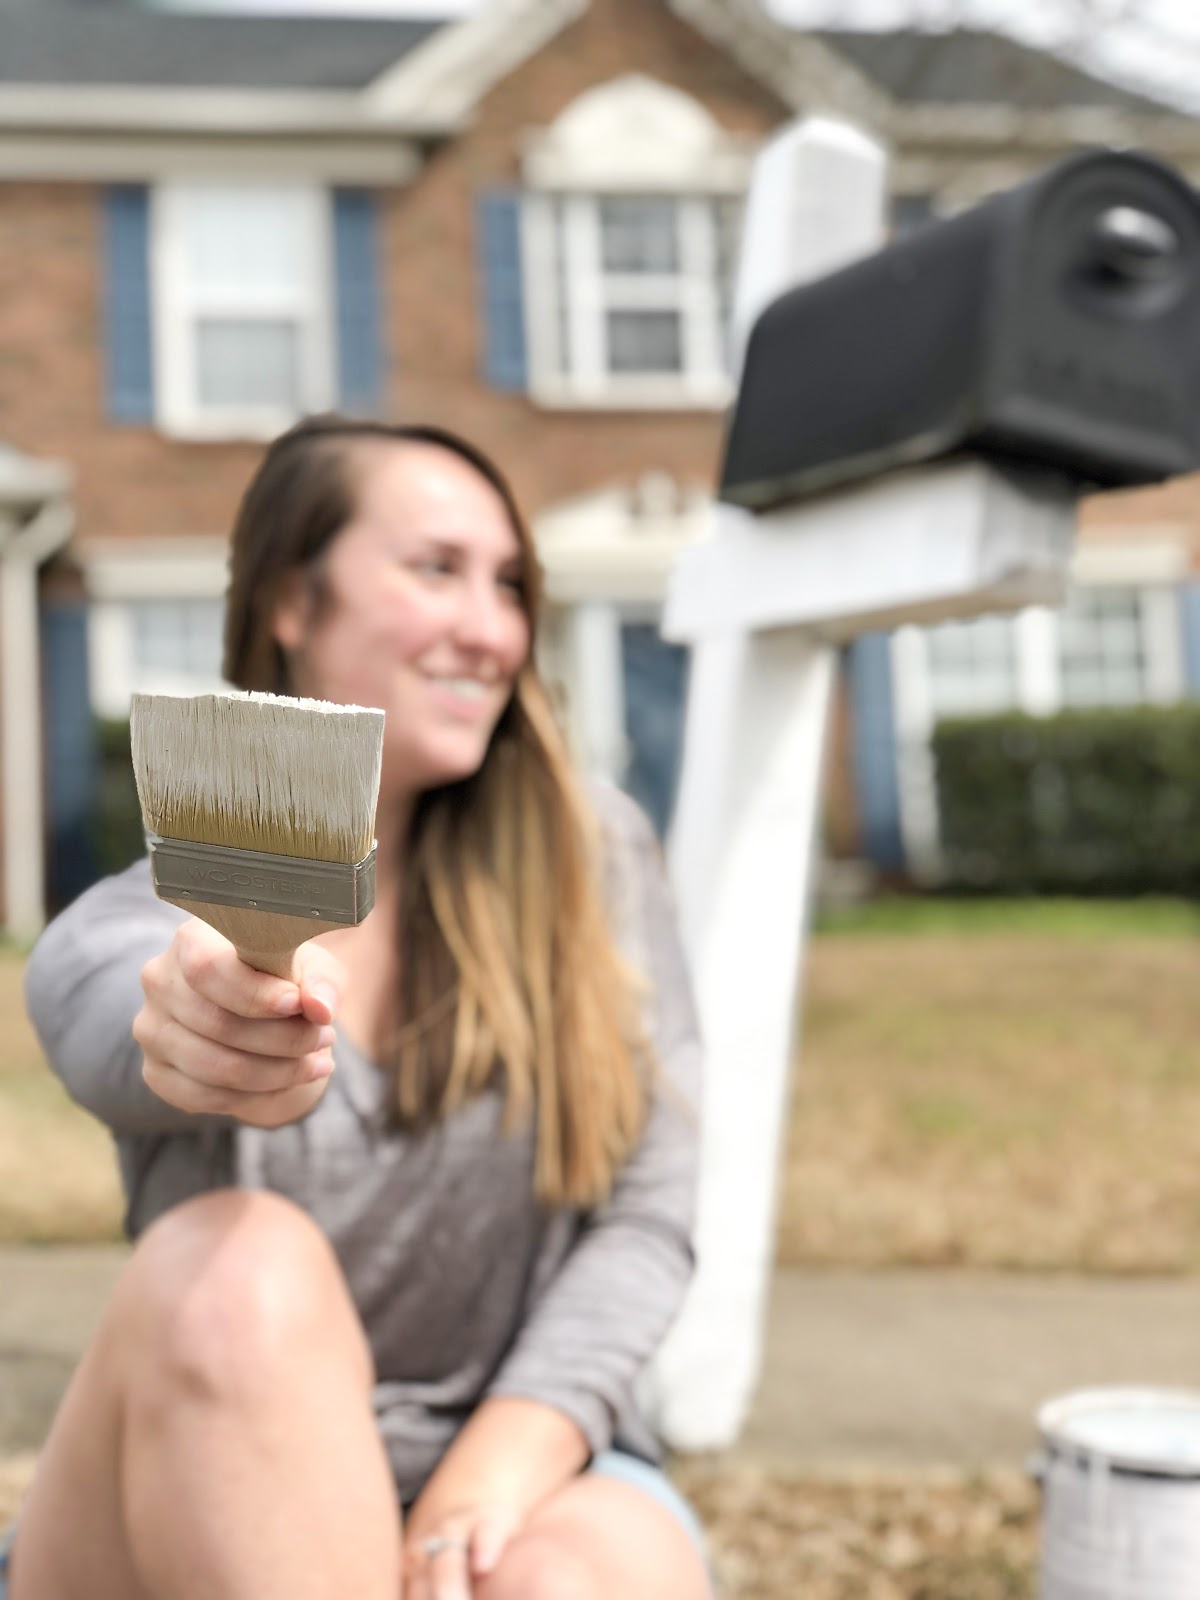 Atlanta-based blogger, Alex, from The Berger Bungalow shares 5 ways to boost curb appeal this spring.